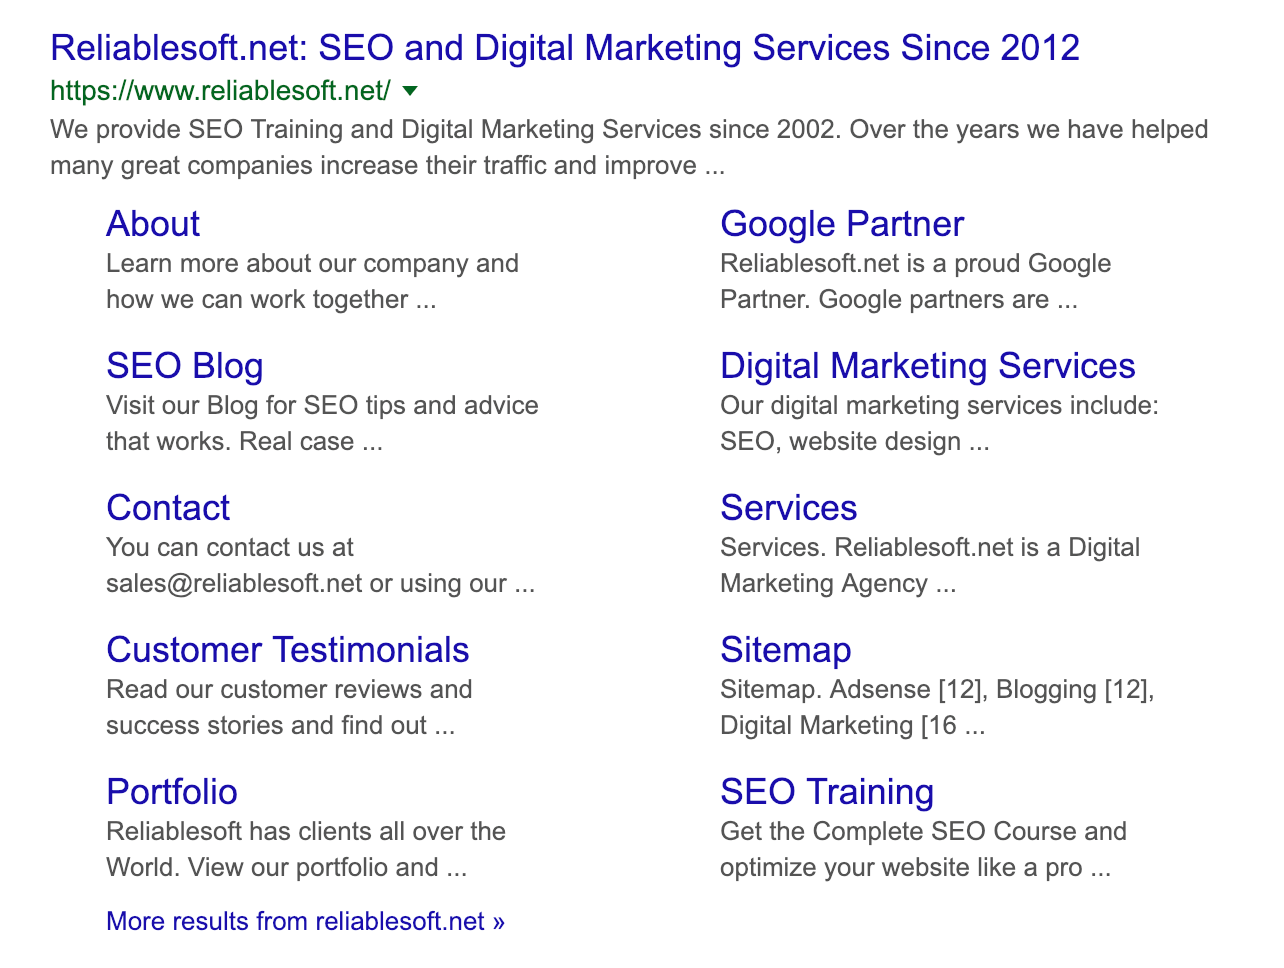 Sitelinks in Google Search Results